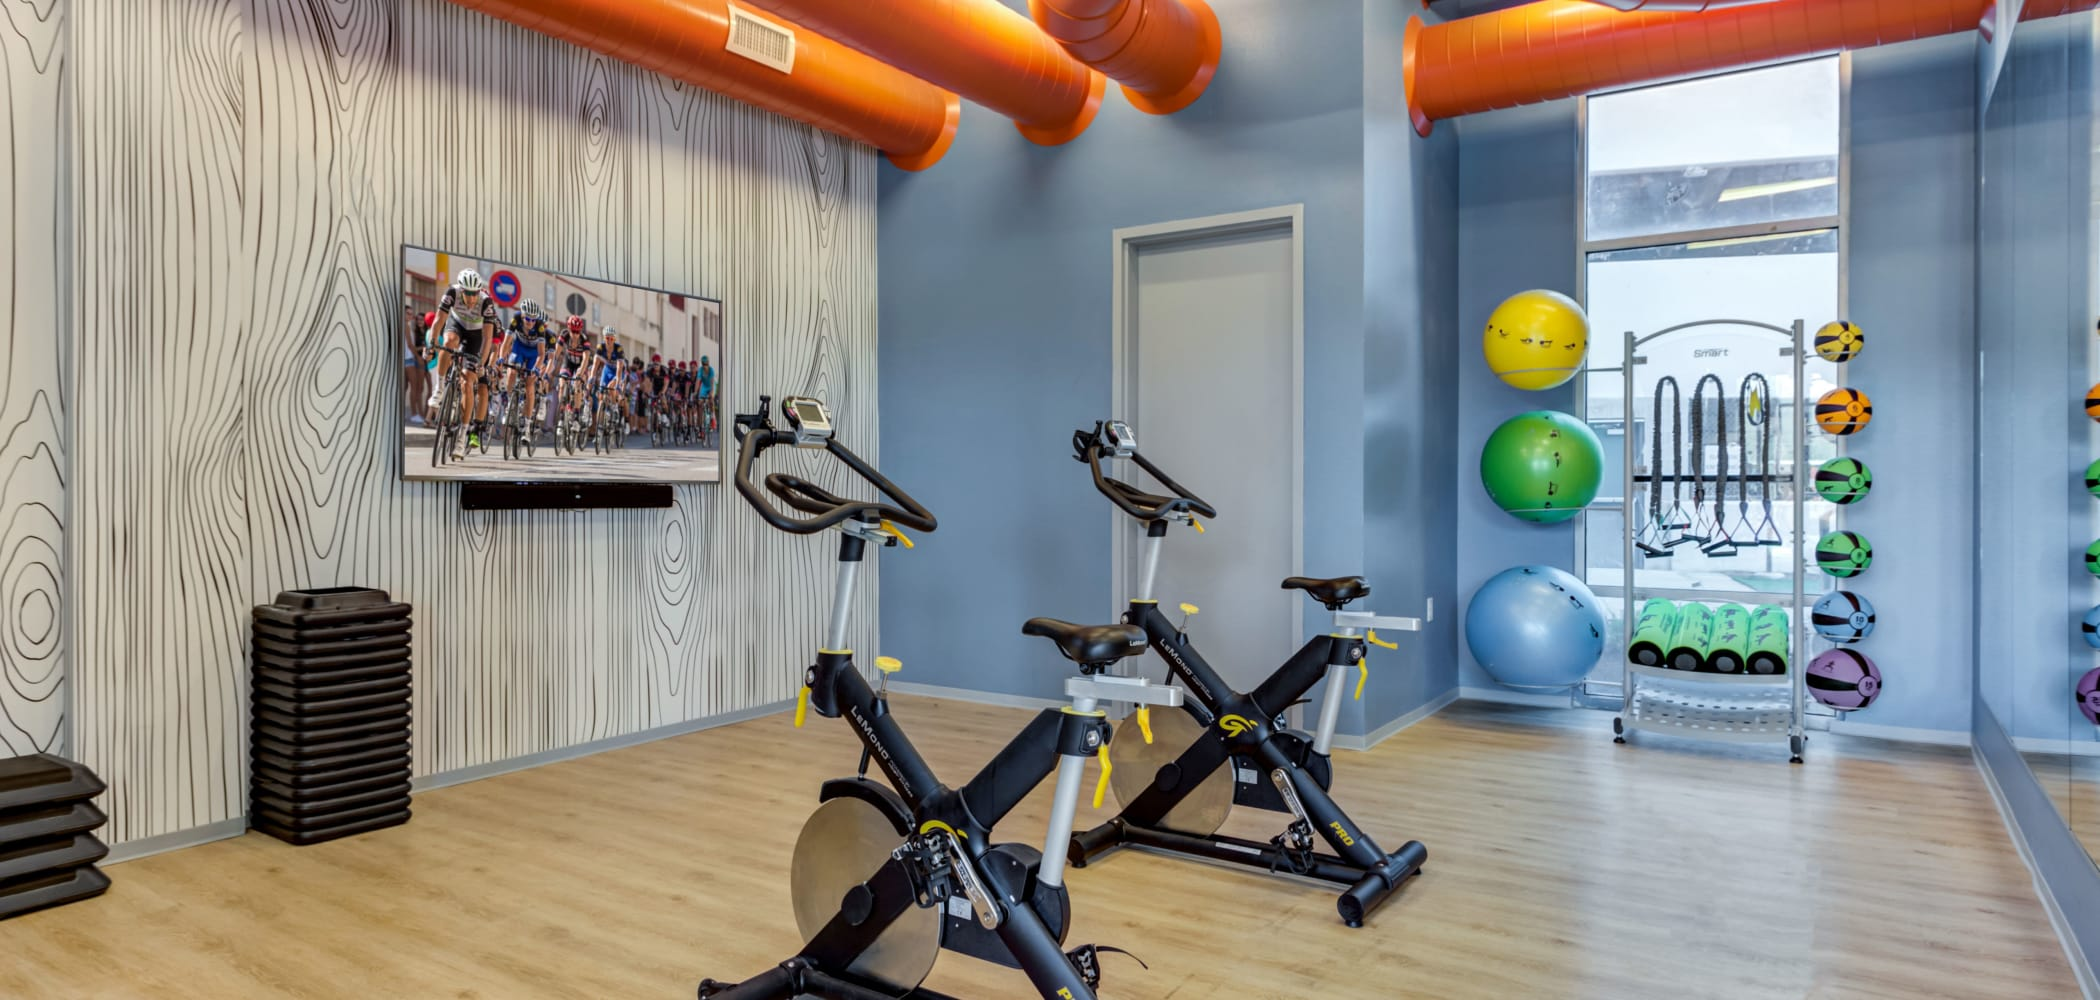 Spin studio at LATITUDE at River Landing in Coralville, Iowa